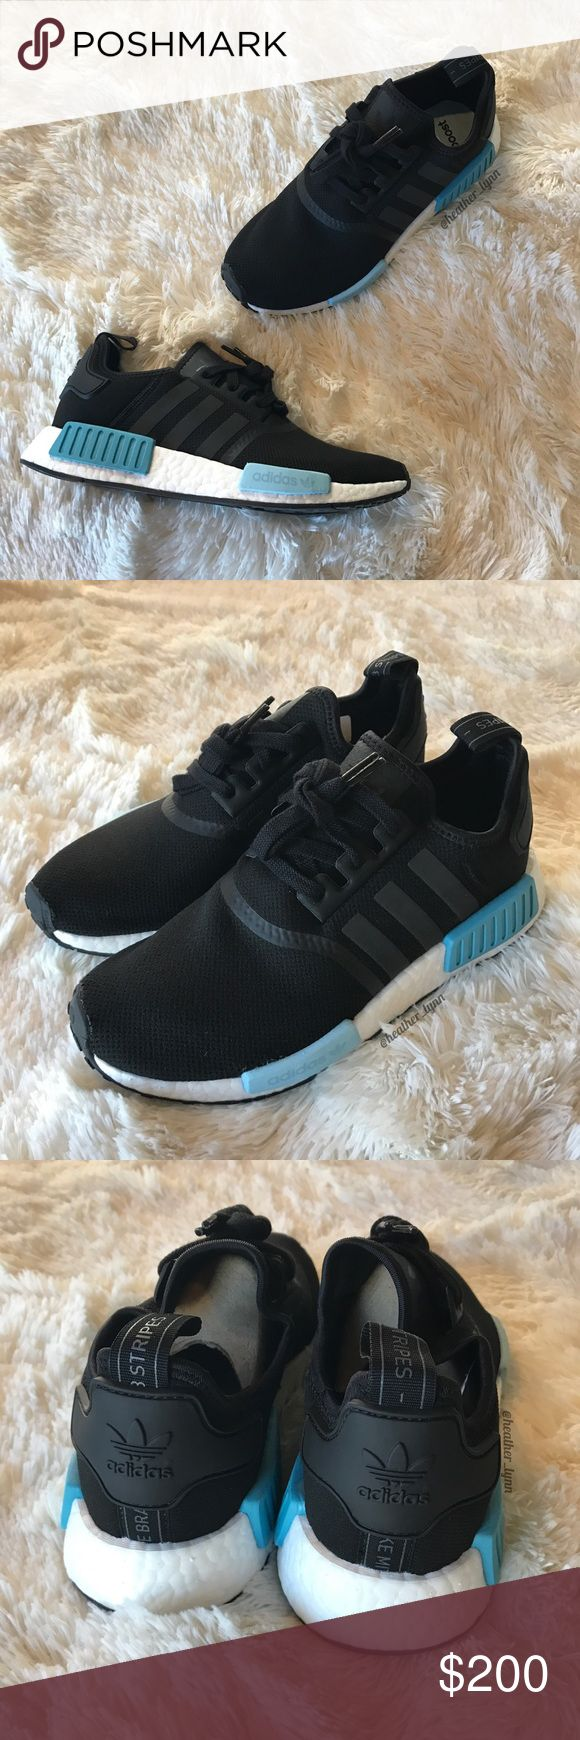 Adidas NMD R1 ✨ Black/Light Blue Women's Size 8.5   100% authentic! Comes with original box.   ❤️ Reasonable offers will be considered (please use the offer button to negotiate prices).  ✅Bundle to save on shipping costs! ♏️ Lower prices on Merc! Find my page by searching for @heather_lynn.  ❌ NO TRADES! ❌ Lowball offers will be ignored and deleted.  Closet Tags: VS, Victoria's Secret, Sport, PINK, Nike, Follow Me, Follow Game Adidas Shoes Sneakers